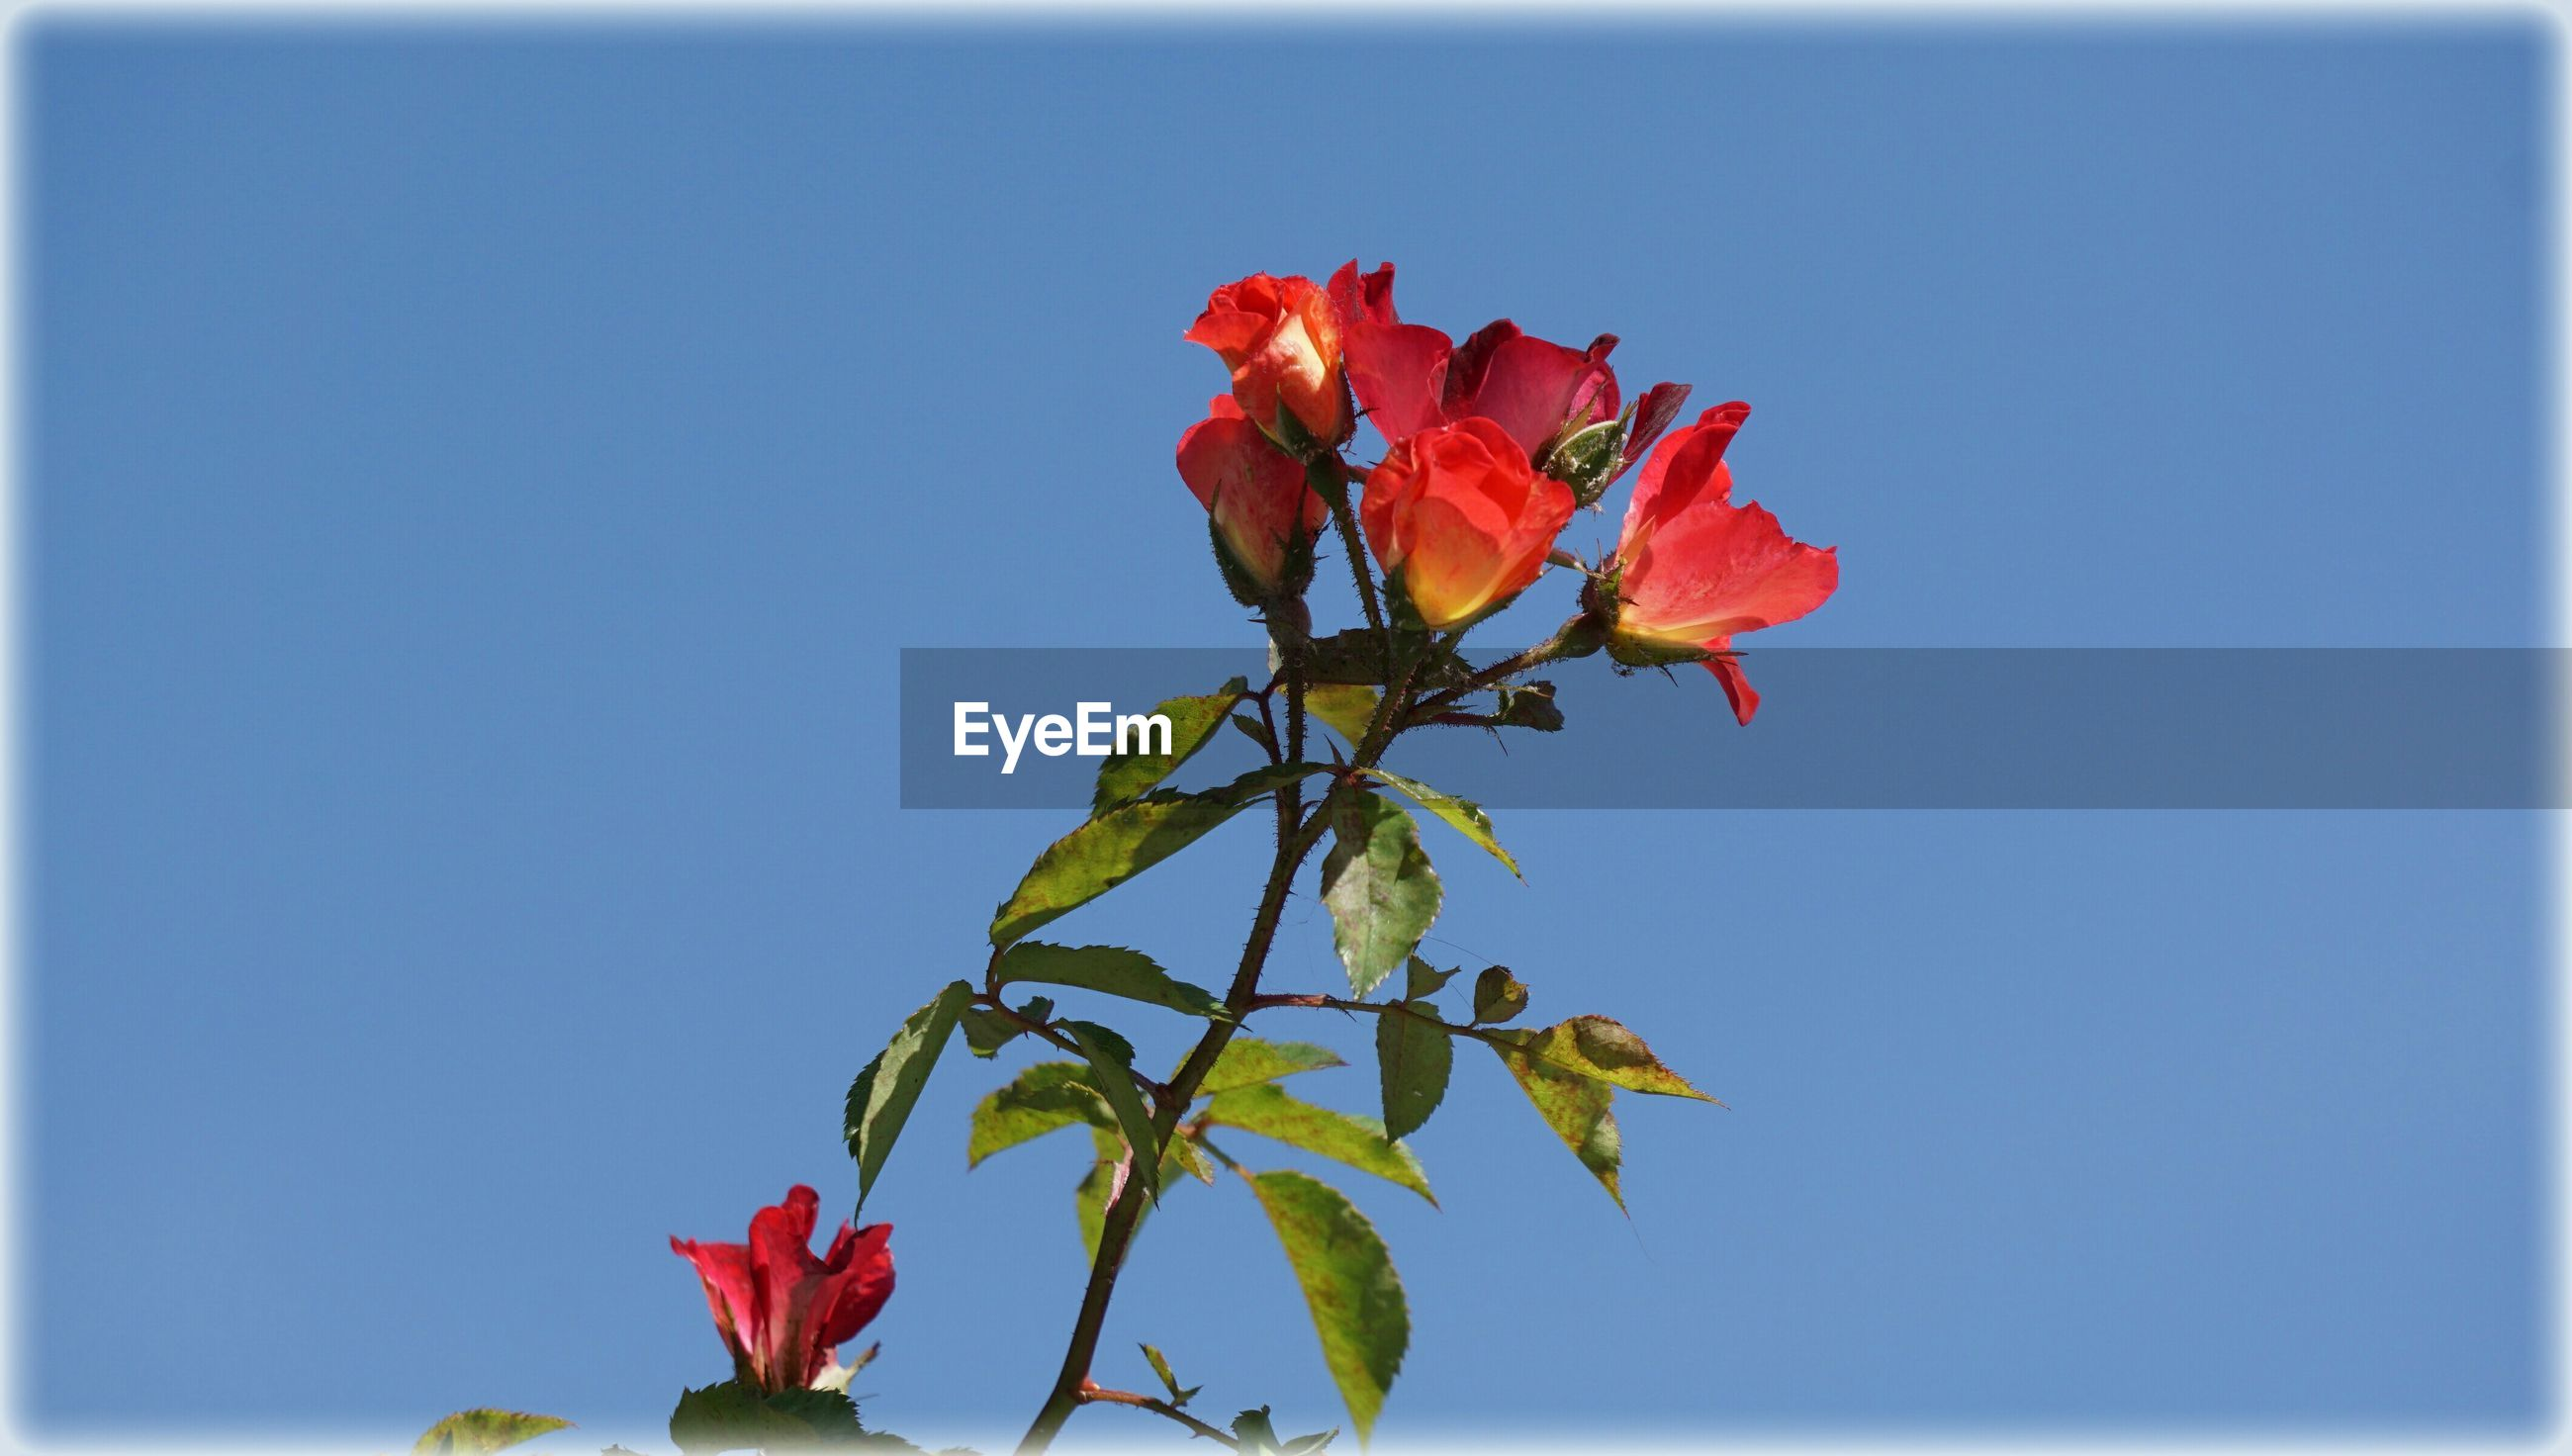 flower, petal, freshness, fragility, growth, beauty in nature, flower head, stem, leaf, nature, close-up, clear sky, red, plant, copy space, blooming, bud, blossom, in bloom, low angle view